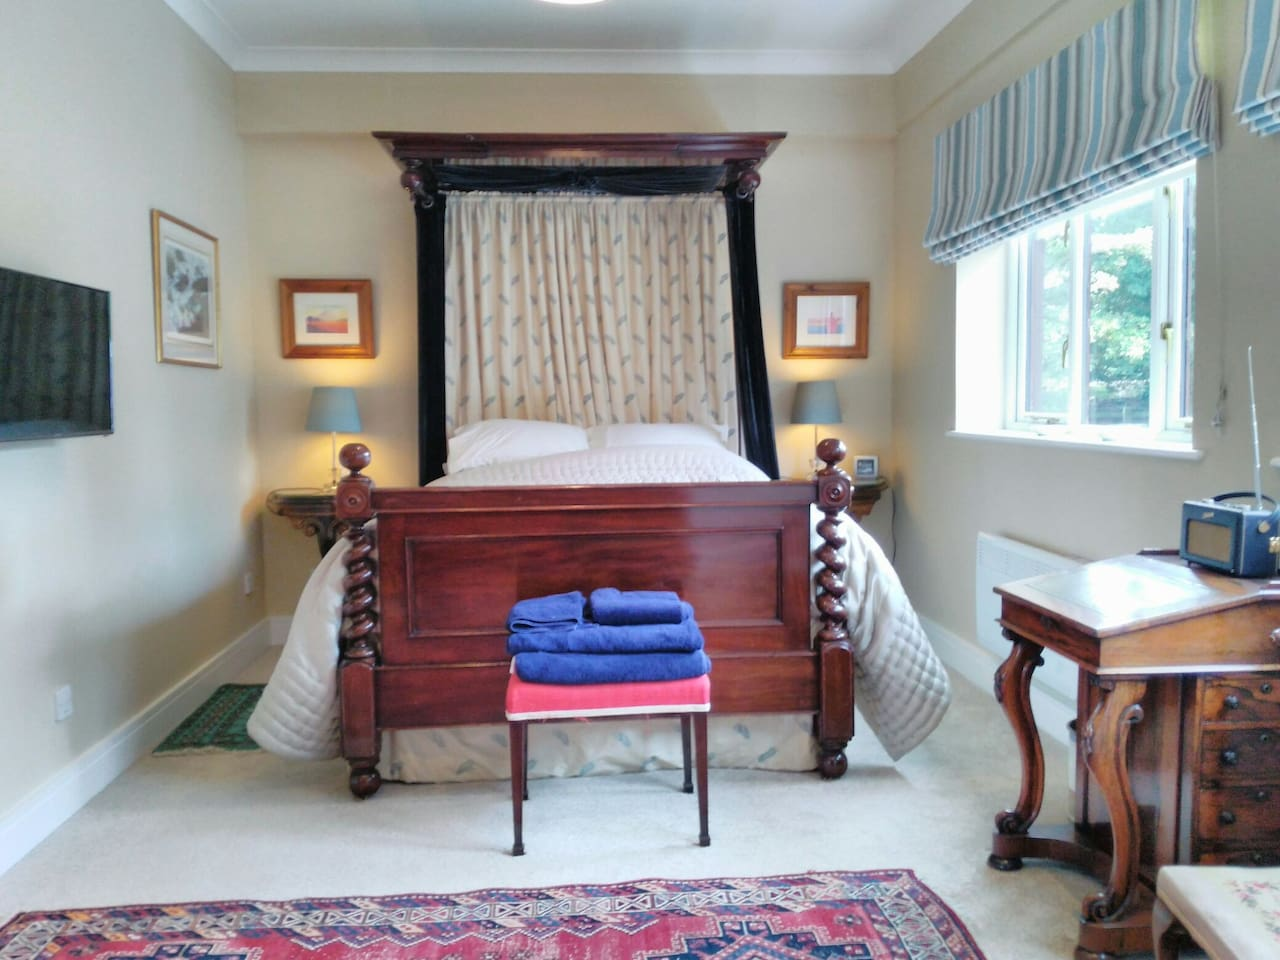 At the Holdens Barn annexe you'll have a comfortable, stunning mahogany half-tester king size double bed. There's a swivelling Smart TV on the wall, fresh, soft towels, ambient lighting, large en-suite, fully equipped kitchen and a large garden area.